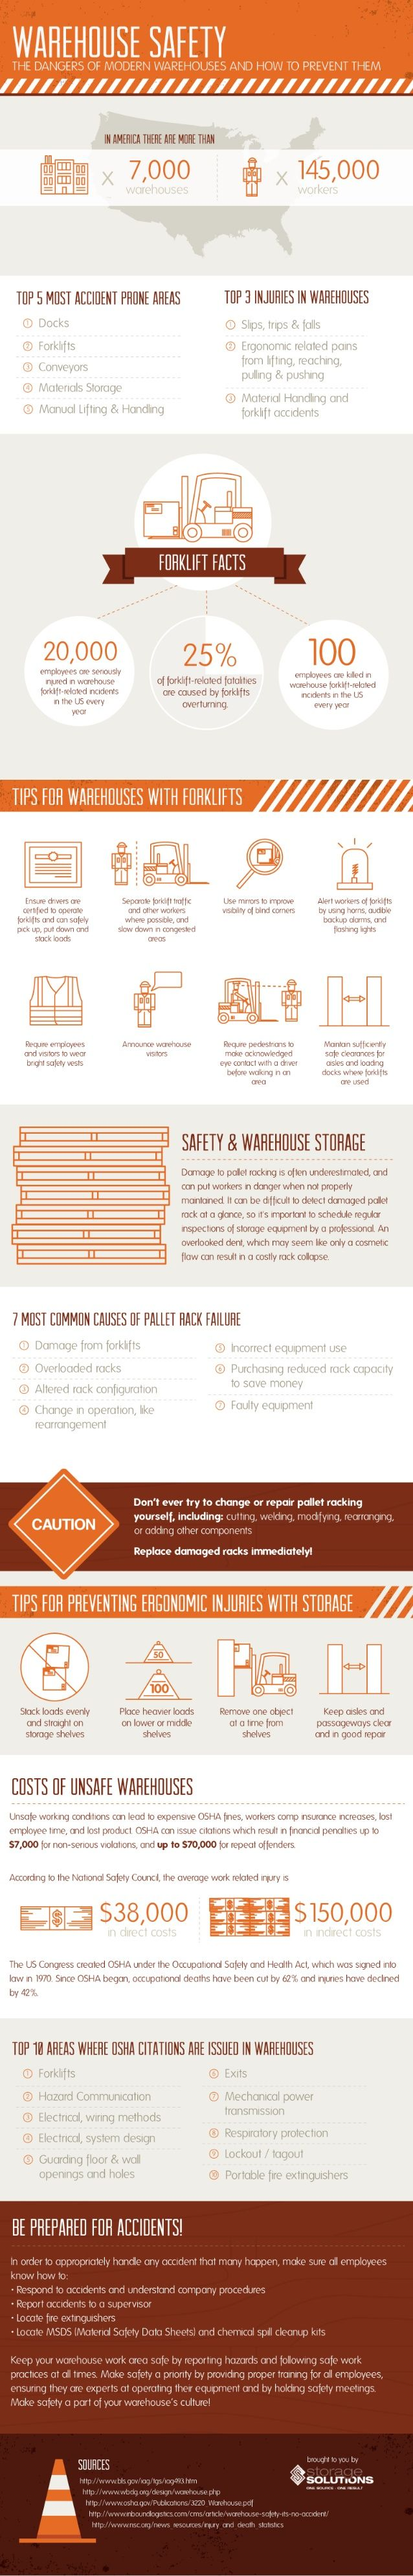 #Warehousing Safety by Storage Solutions #forklift